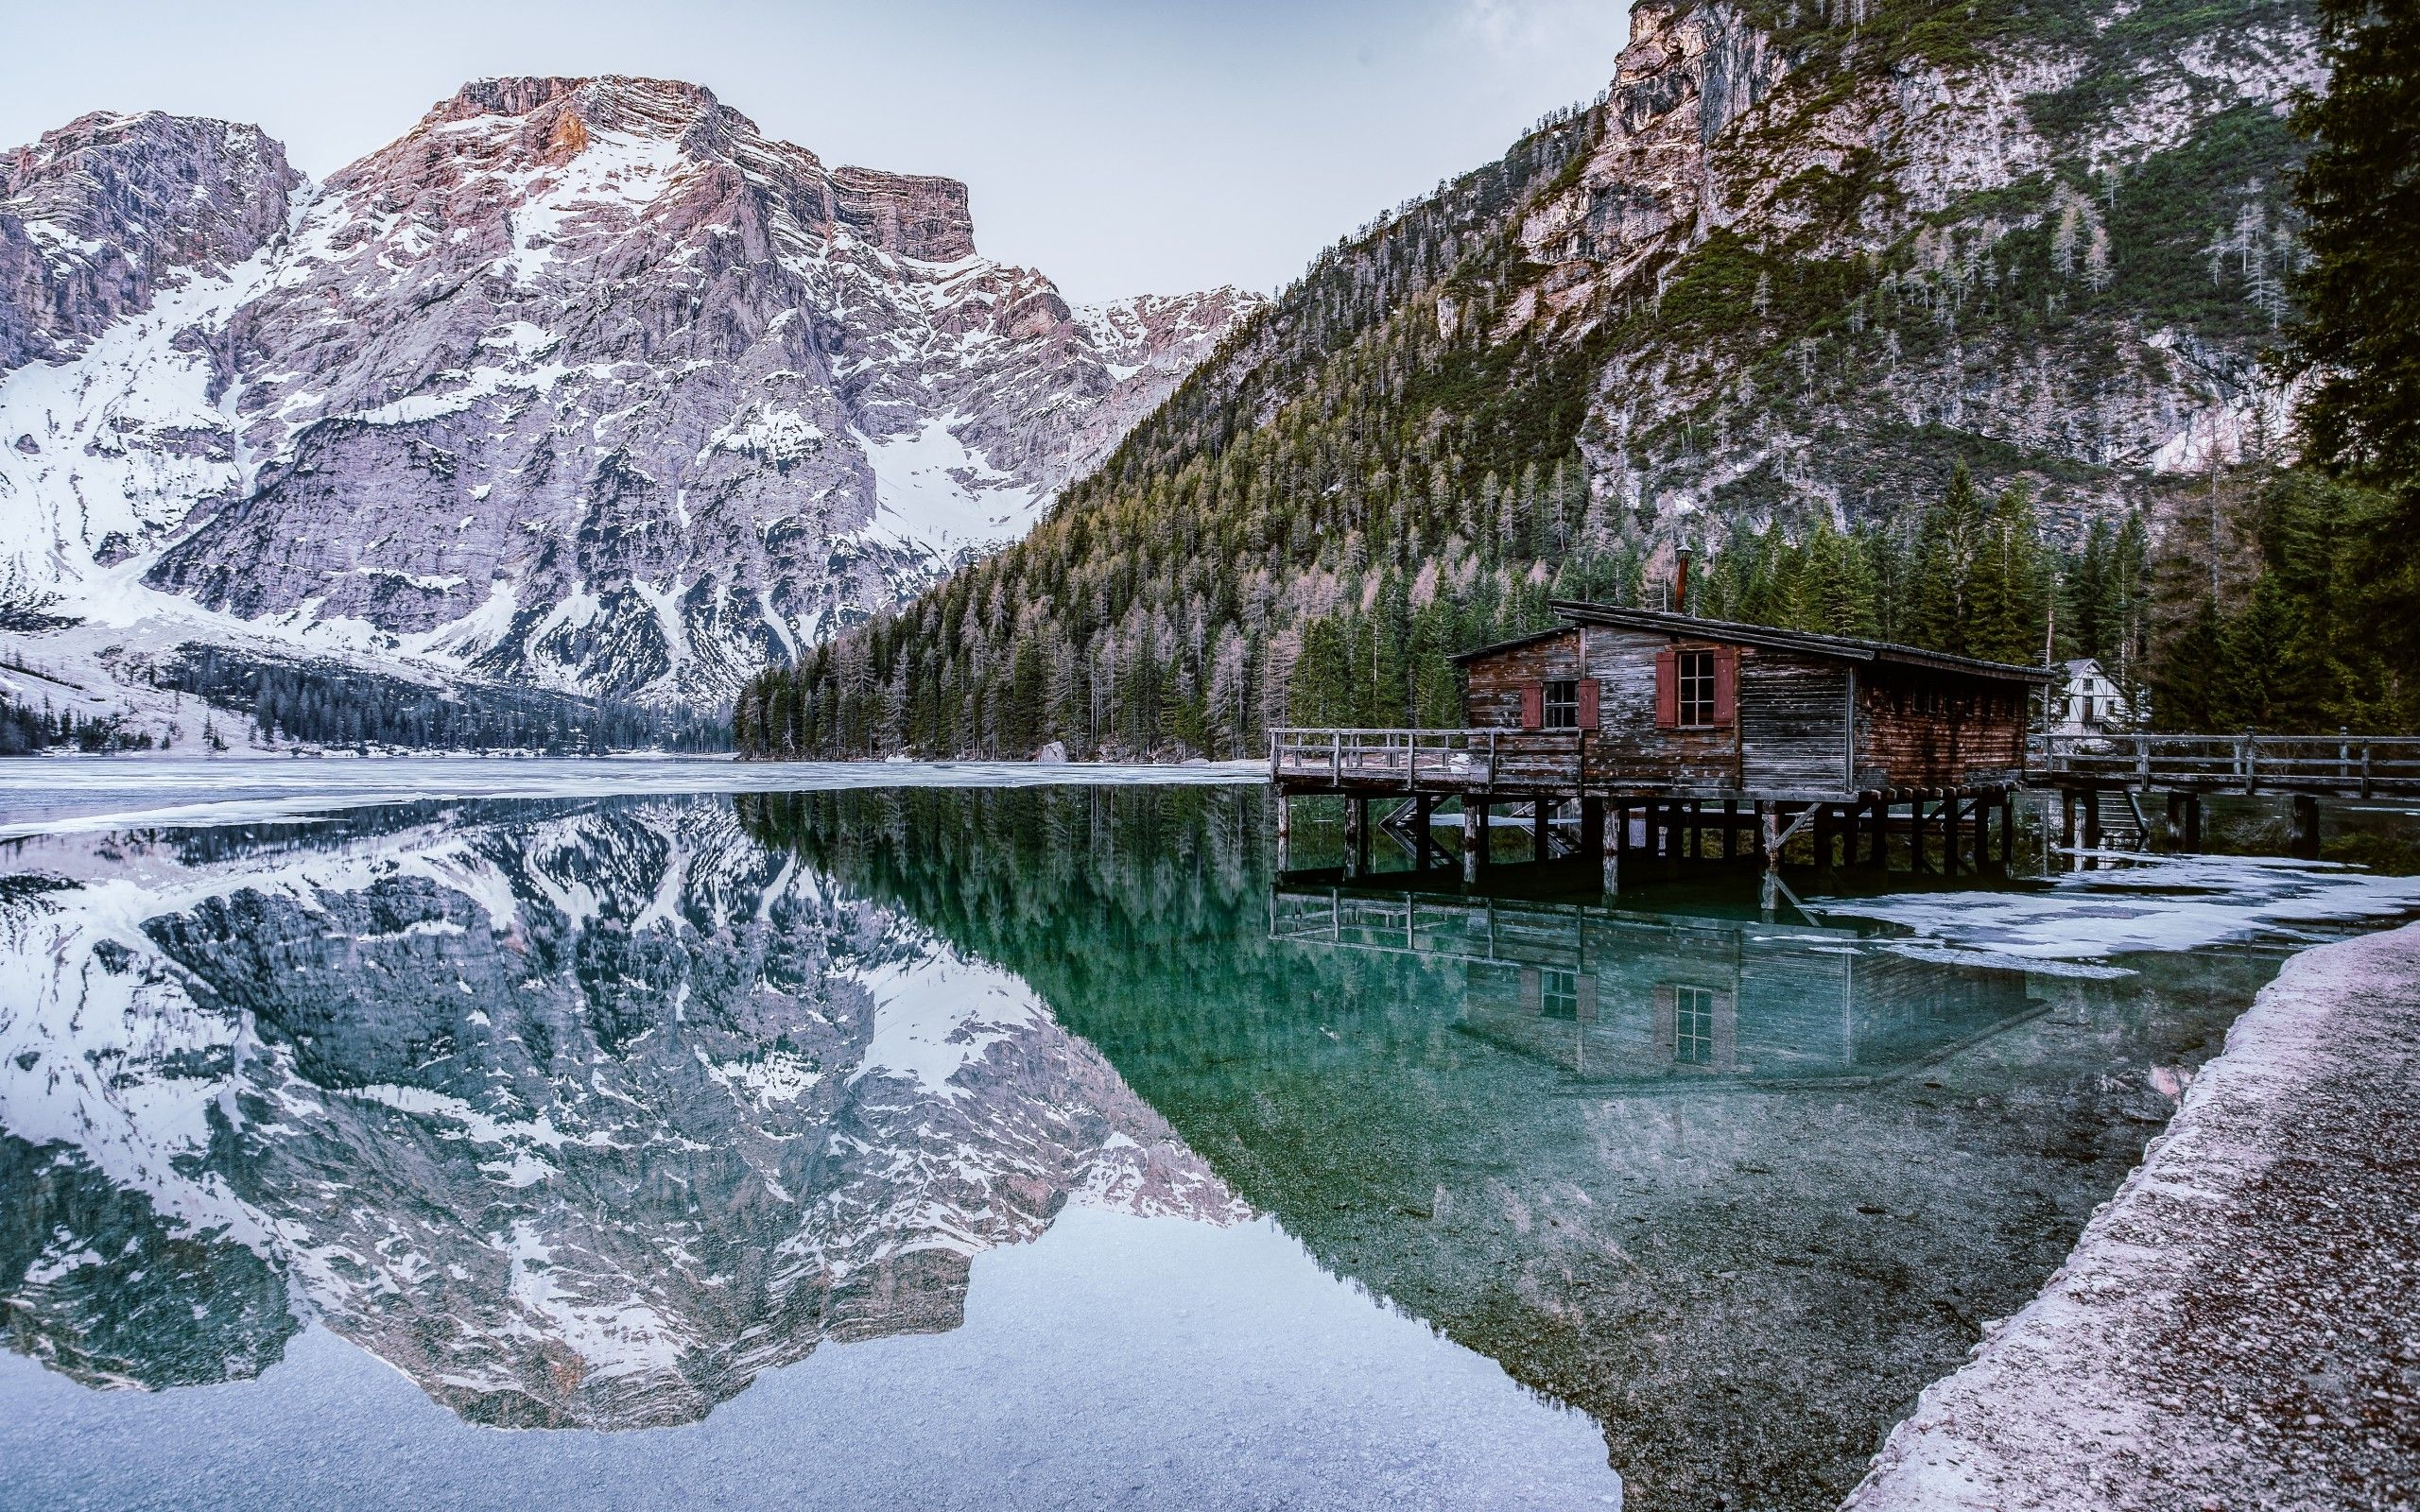 2560x1600 Download 2560x1600 Alpine, Lake, Mountain, Scenic, Relaxing ...